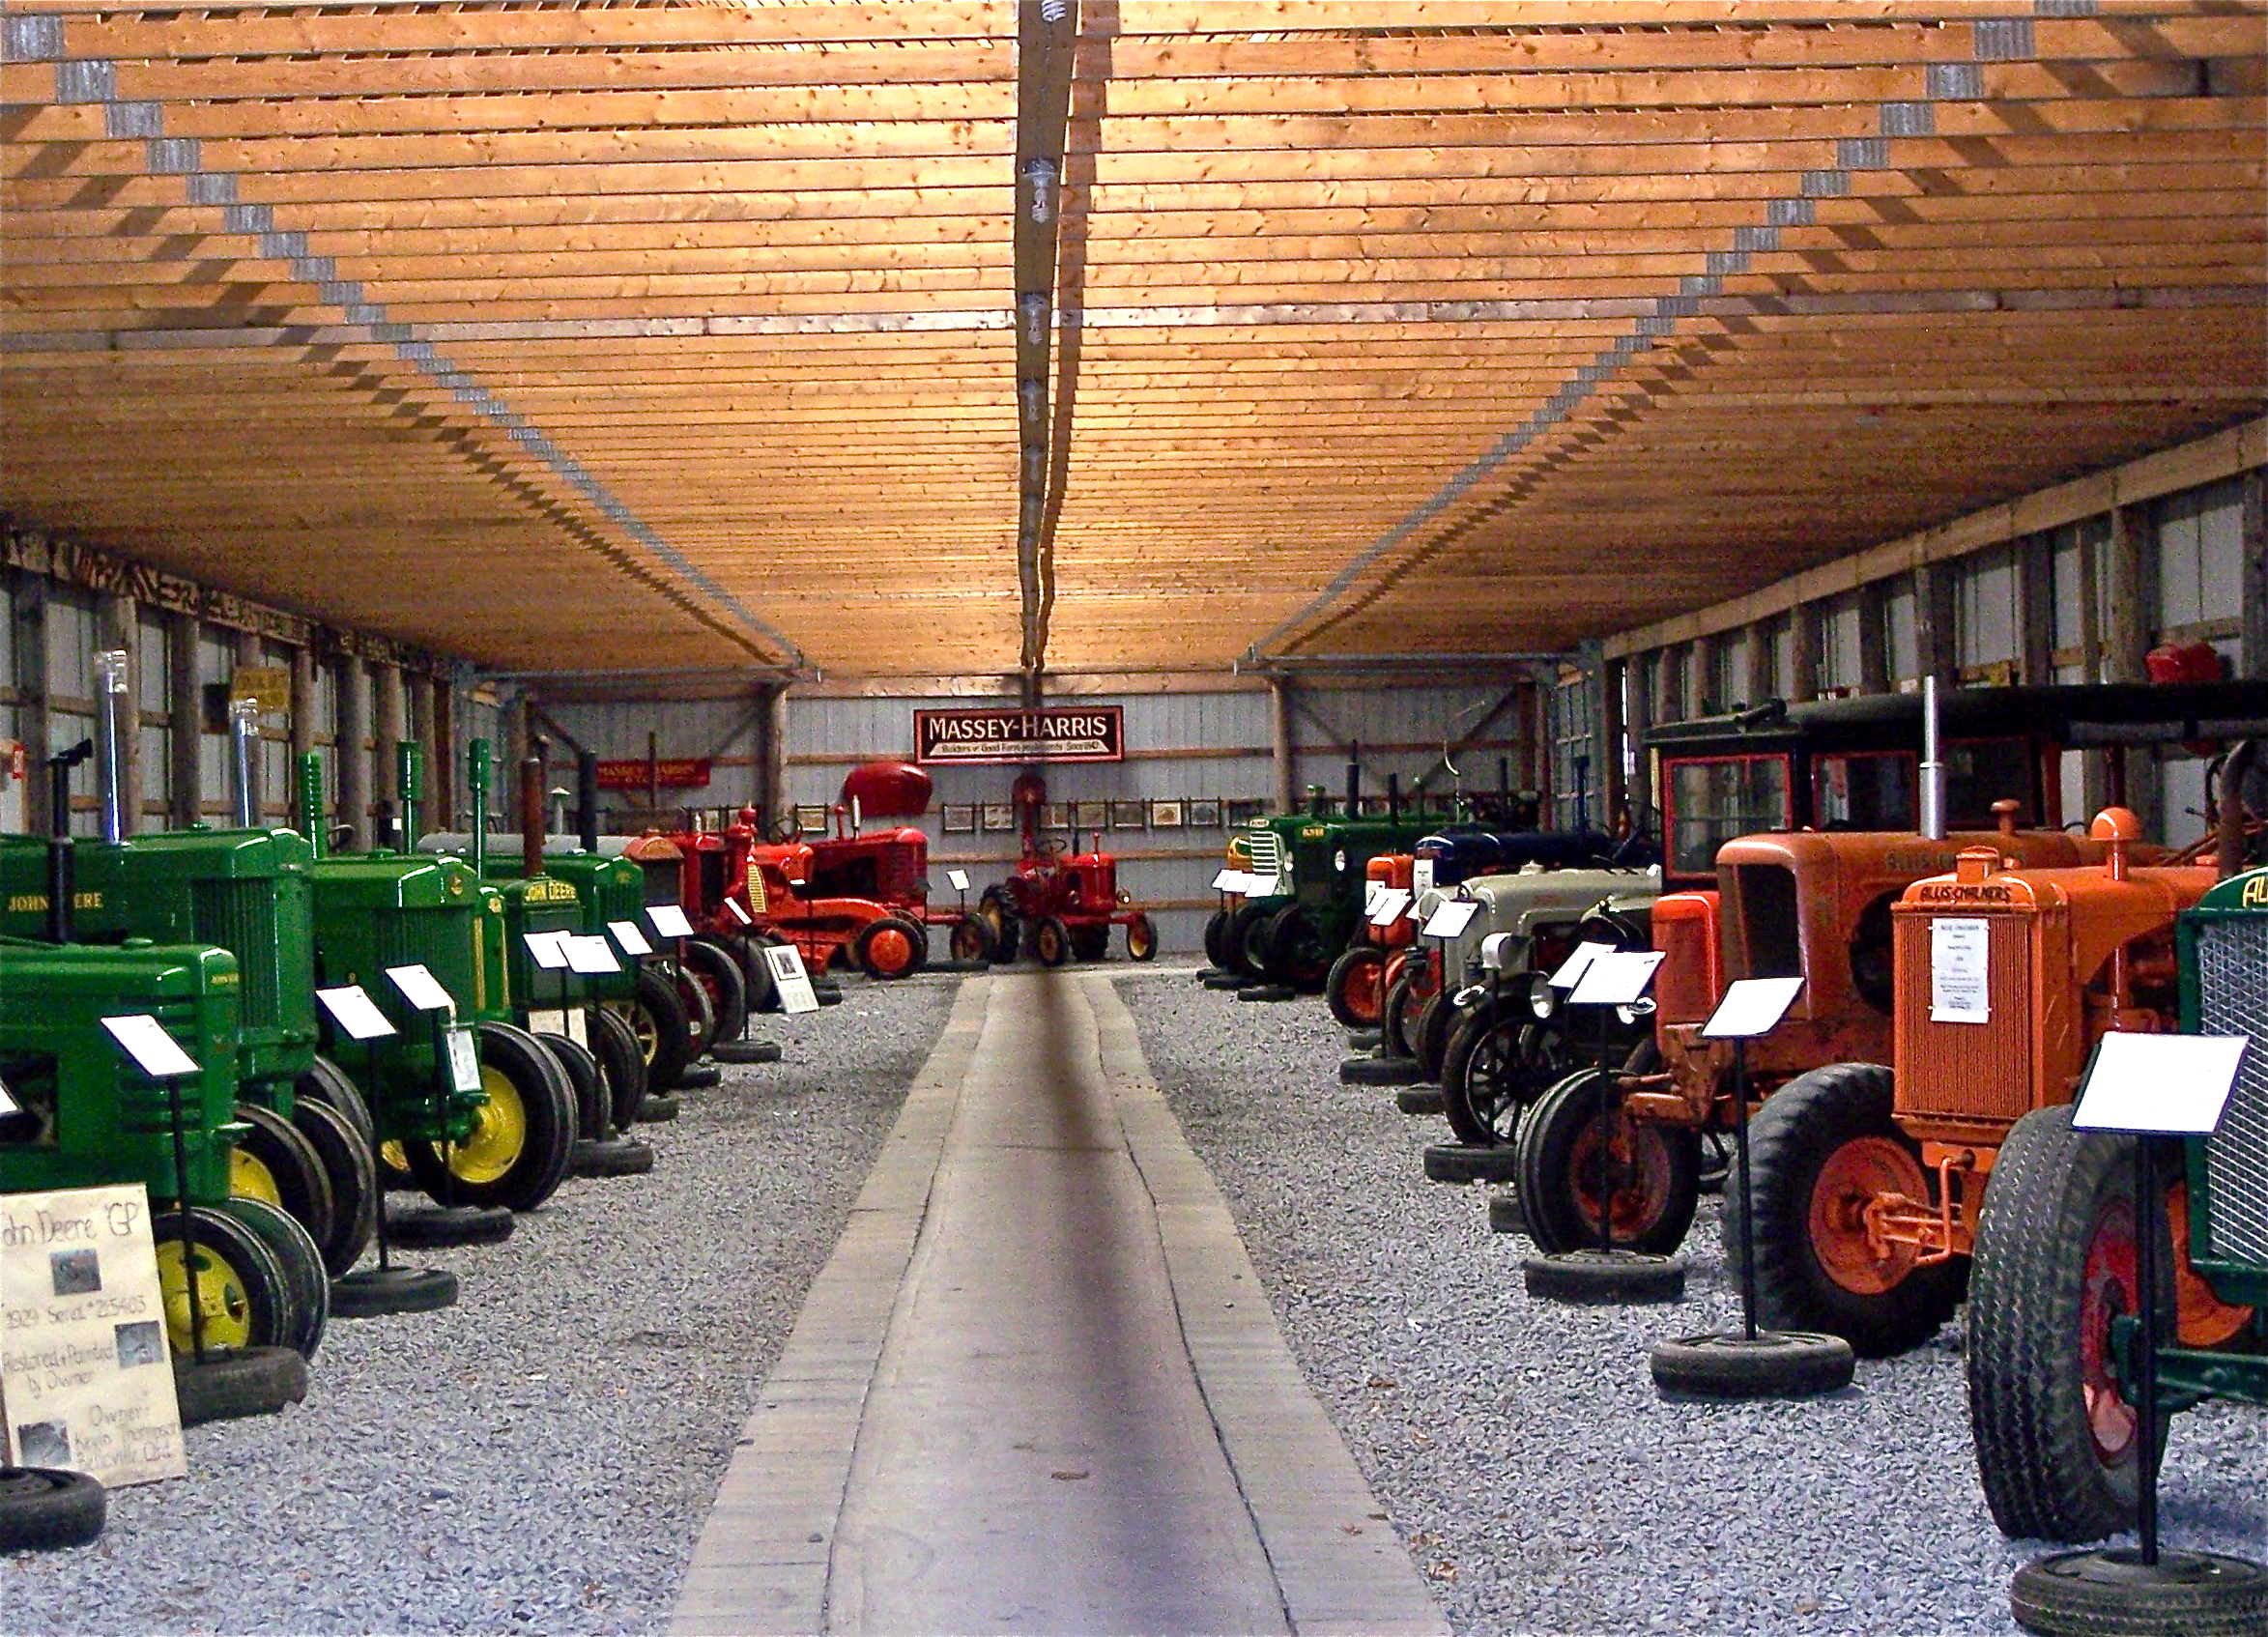 The Tractor Building is home to over 60 antique tractors.